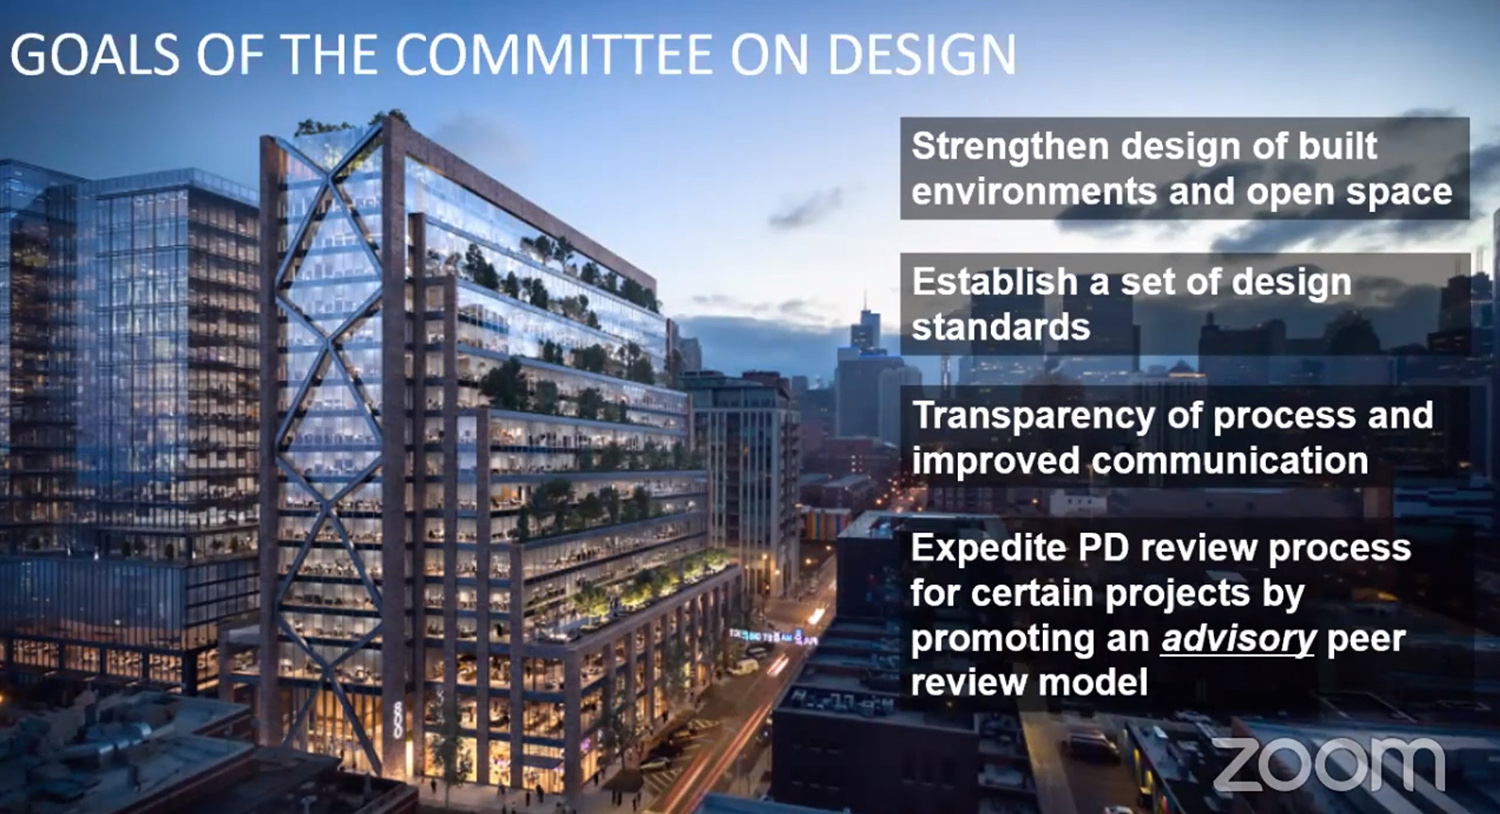 Goals of Committee on Design. Slide by Department of Planning and Development